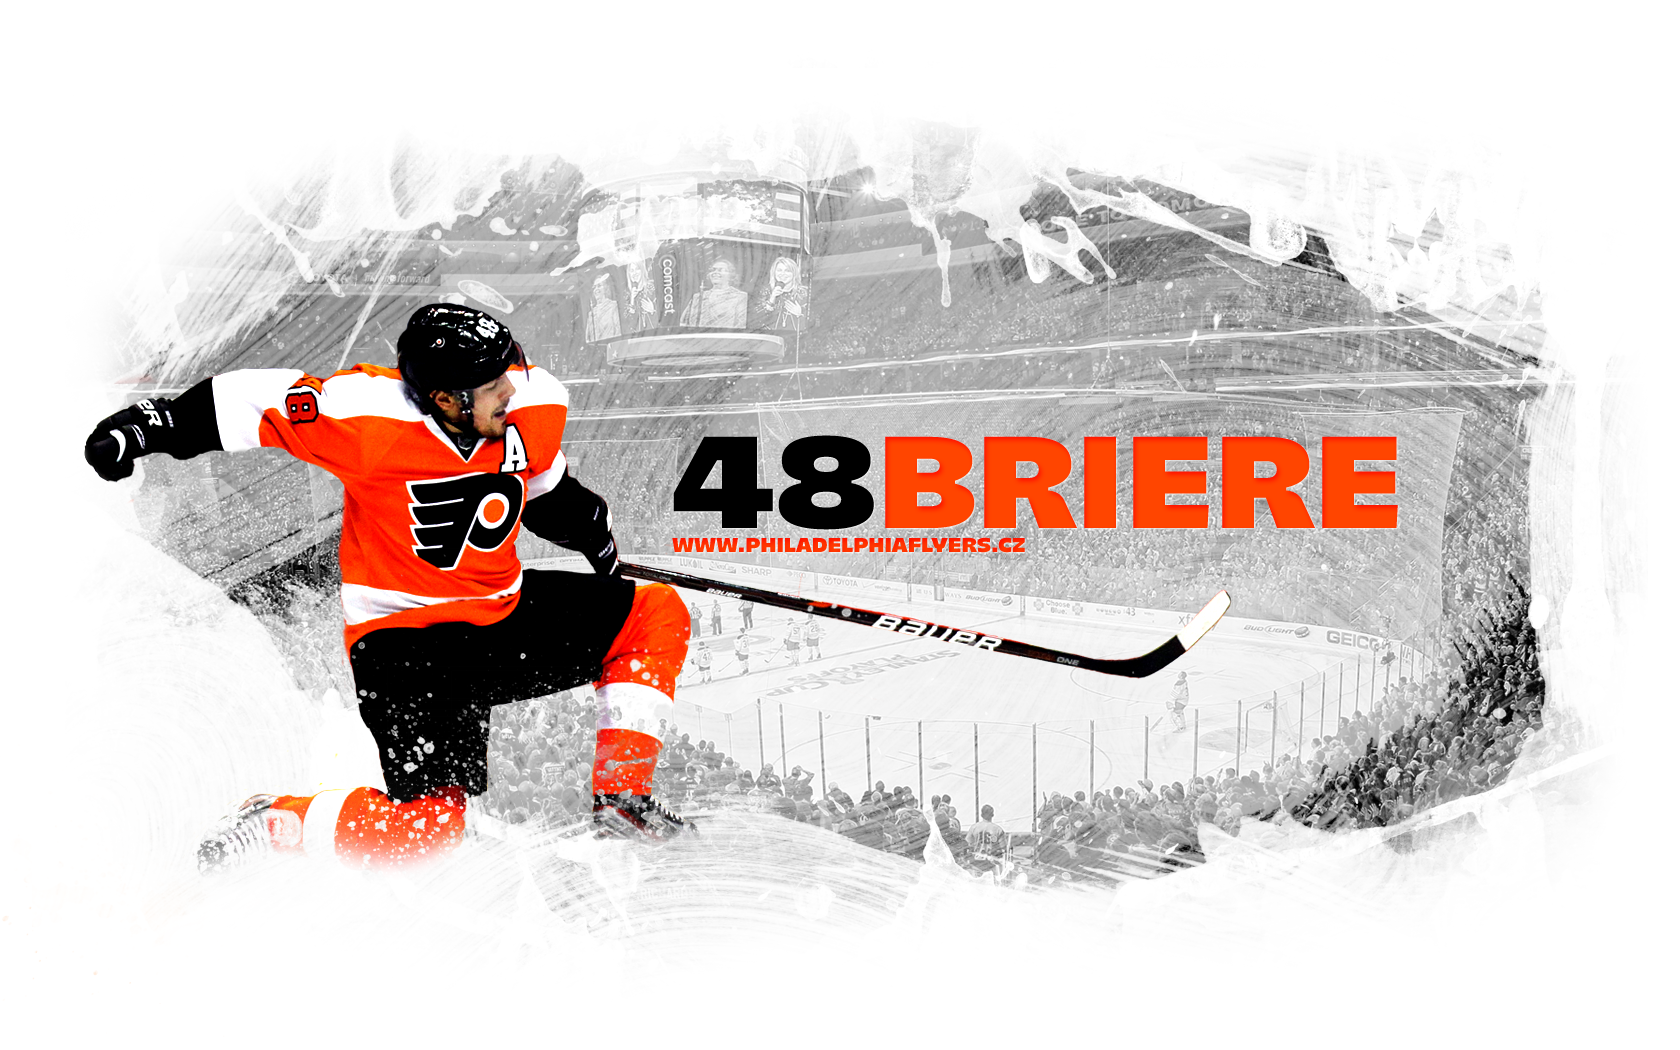 http://philadelphiaflyers.cz/BRIERE48.png